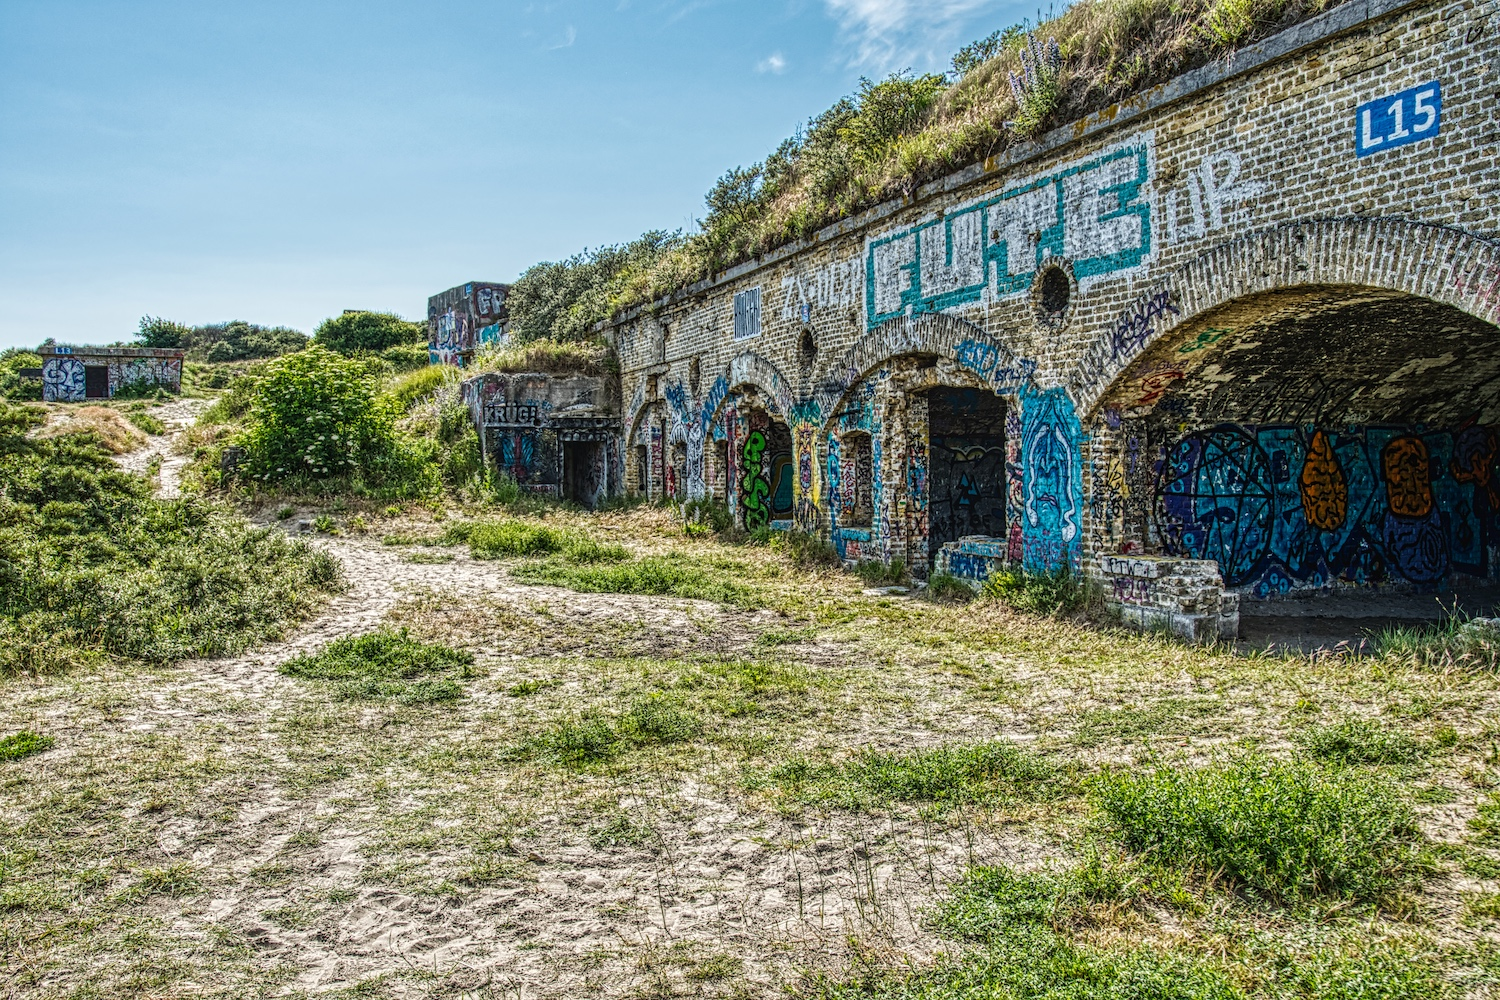 Remains of bunkers from the Second World War